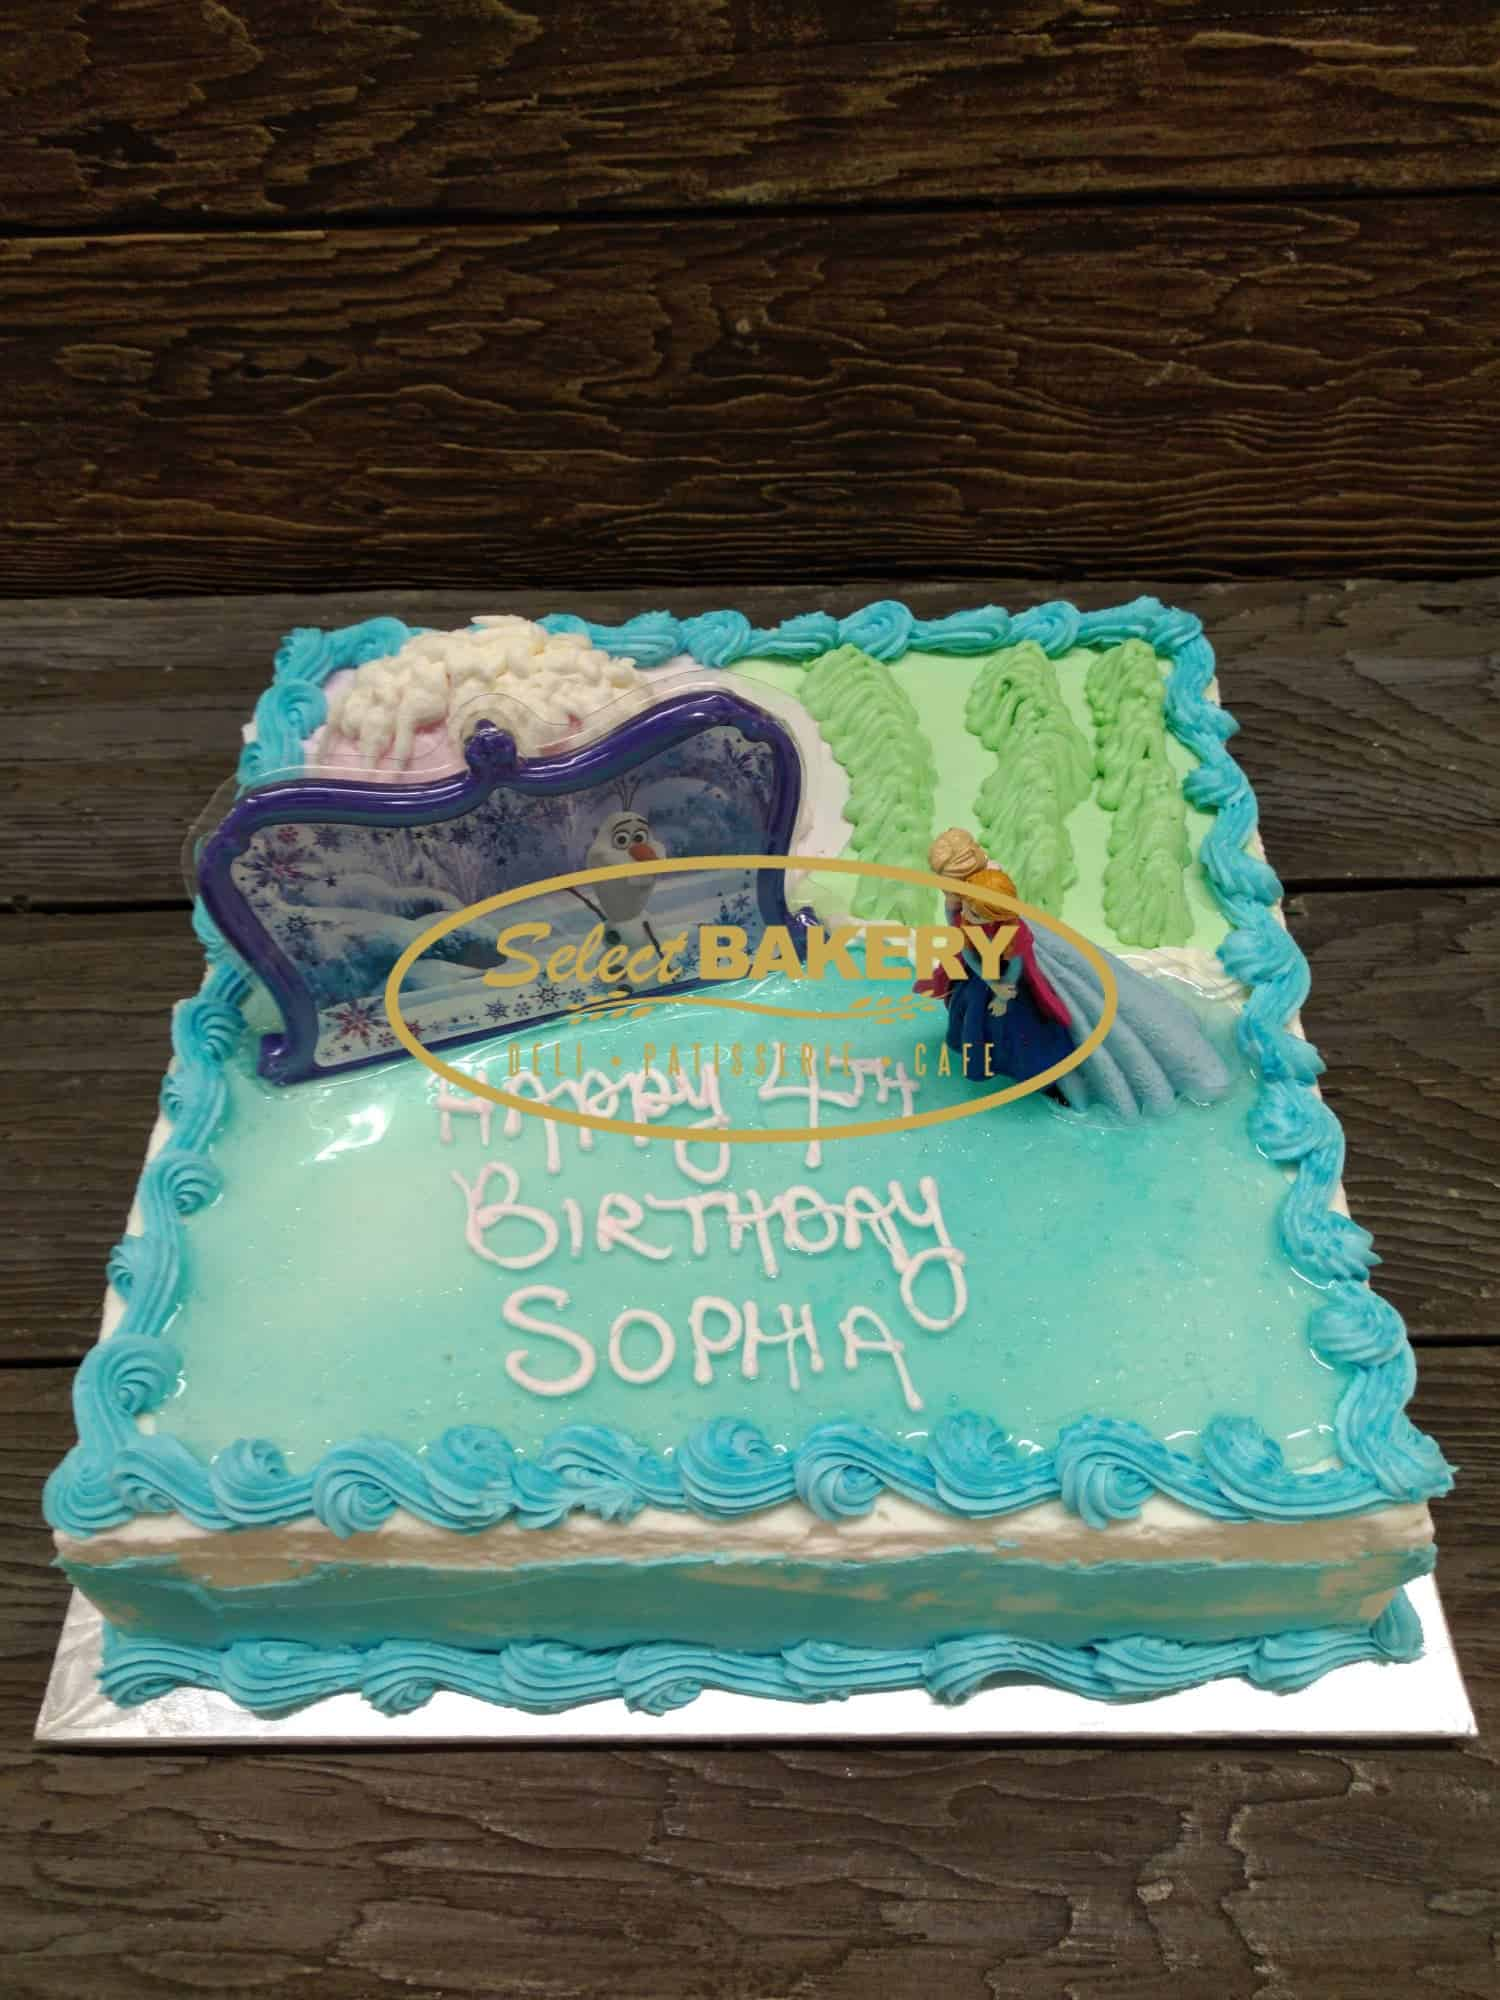 Wondrous Frozen Birthday Cake For 20 25 People Select Bakery Birthday Cards Printable Opercafe Filternl